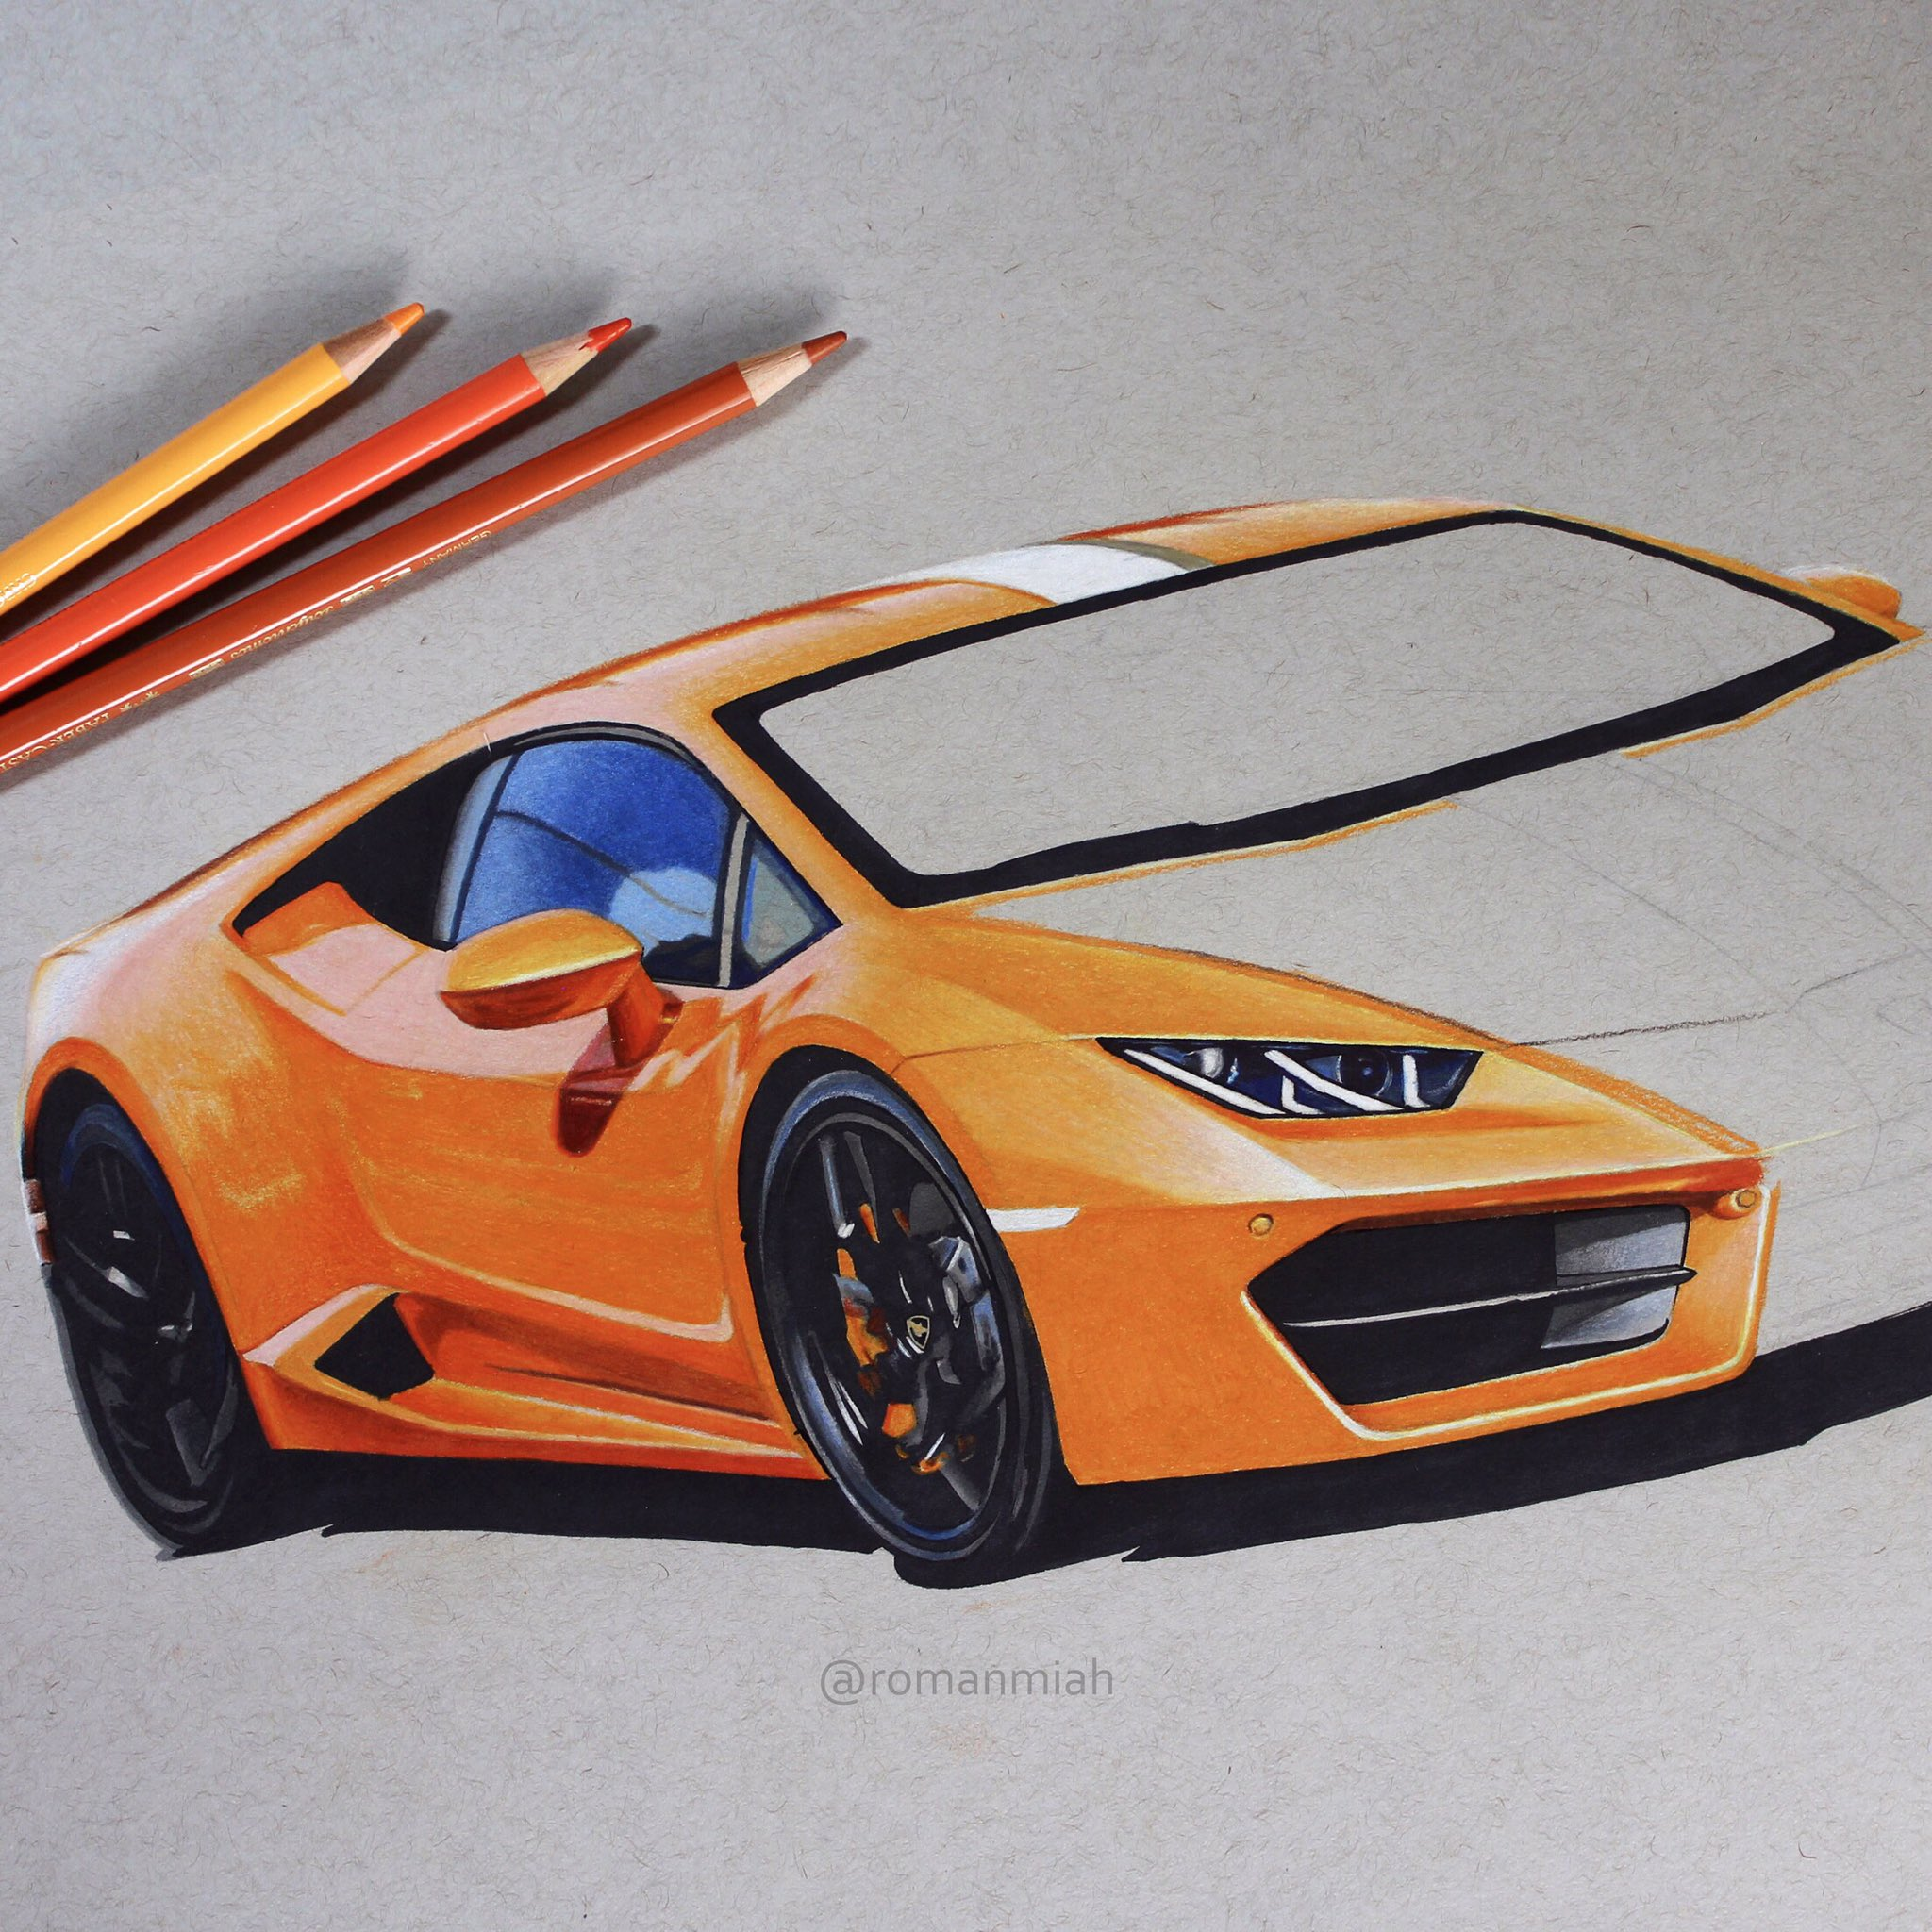 "Roman Miah On Twitter: ""Drawing Of @WallacePJW Lamborghini"